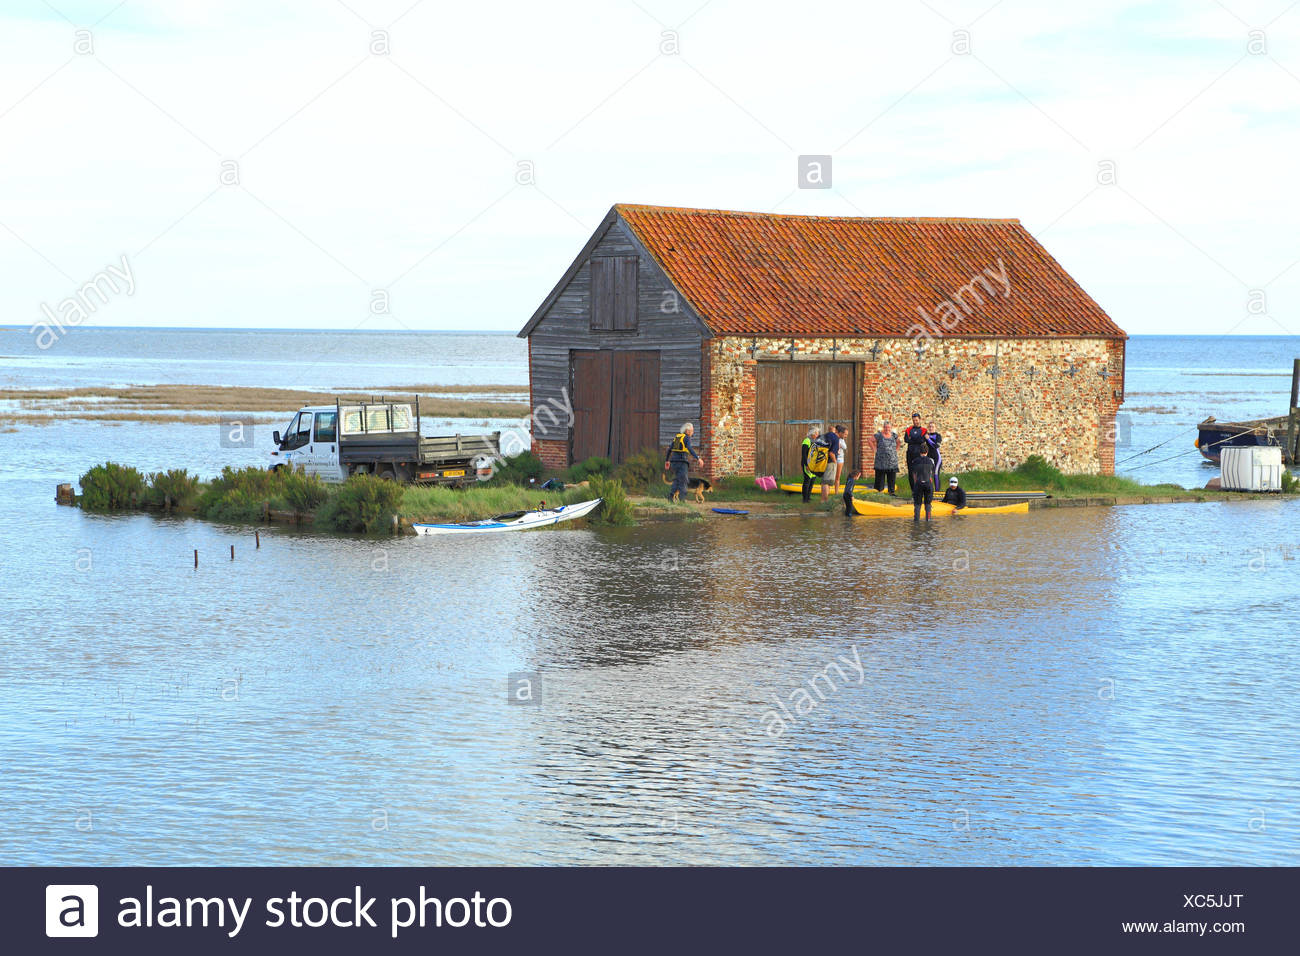 Truck, vehicle, people, cut off by high tide, North Sea surge, Coal Barn, Thornham, Norfolk, England, UK - Stock Image